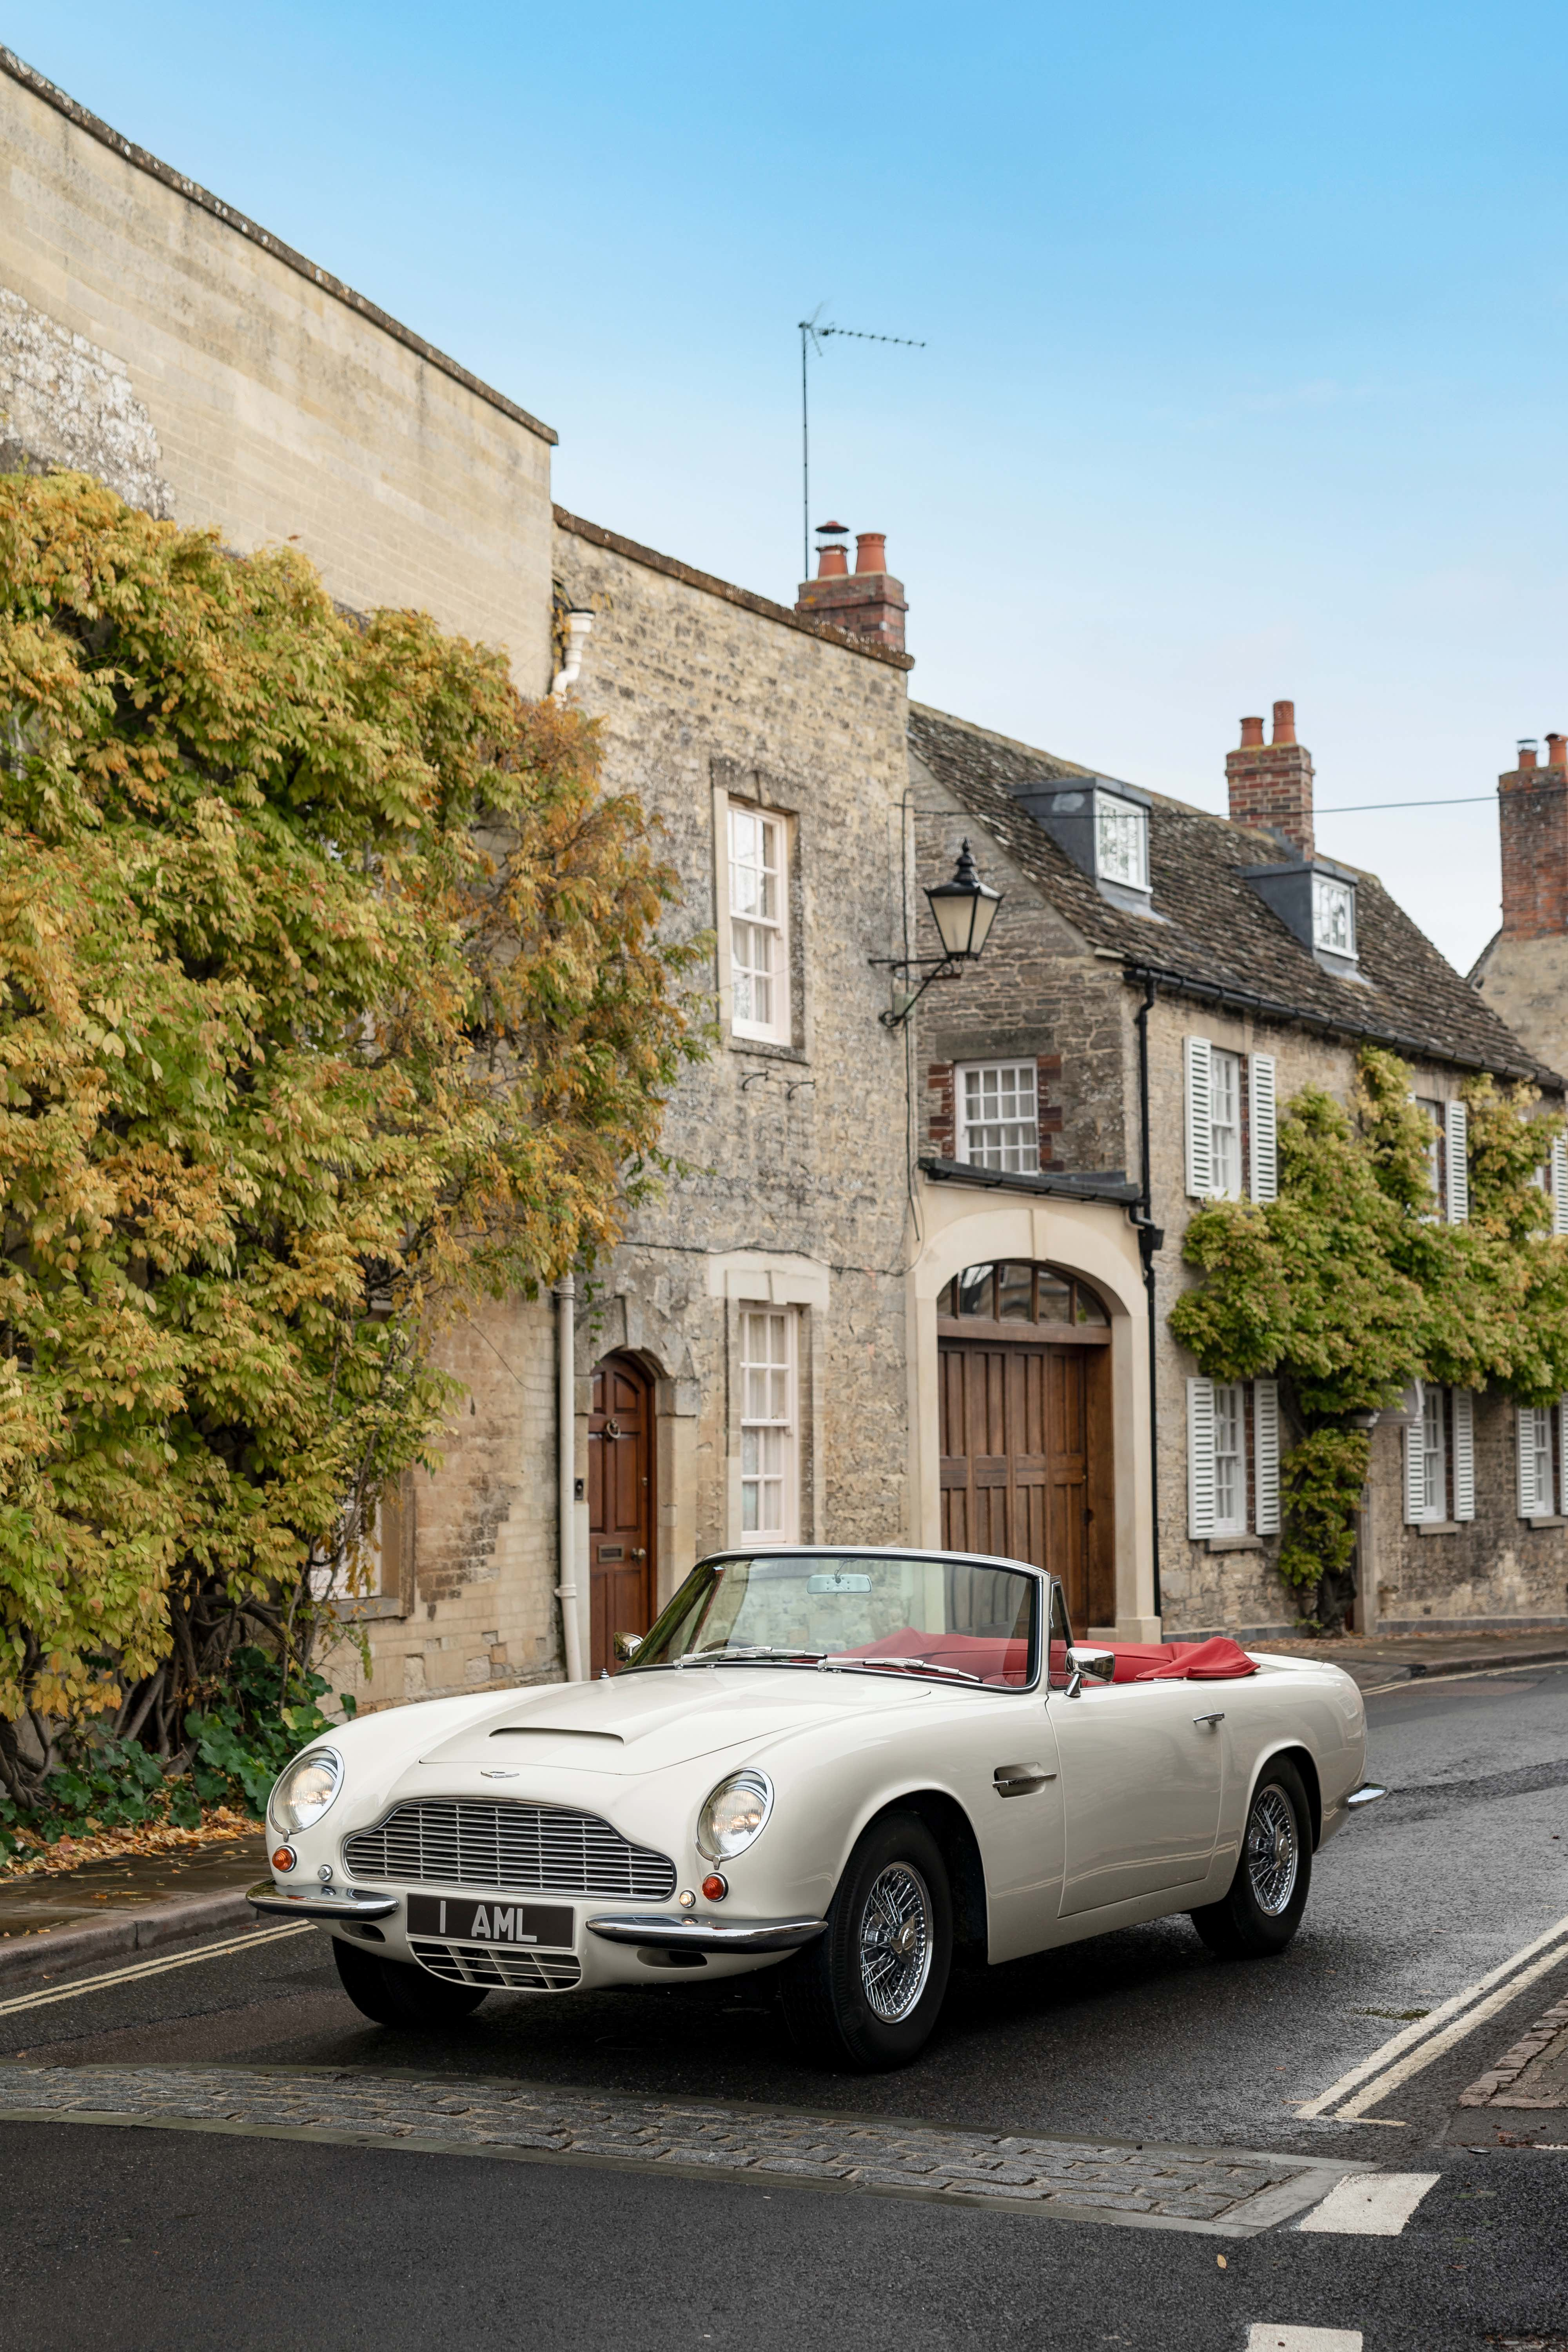 Aston Martin To Offer Electric Conversions Of Classic Cars Electrek